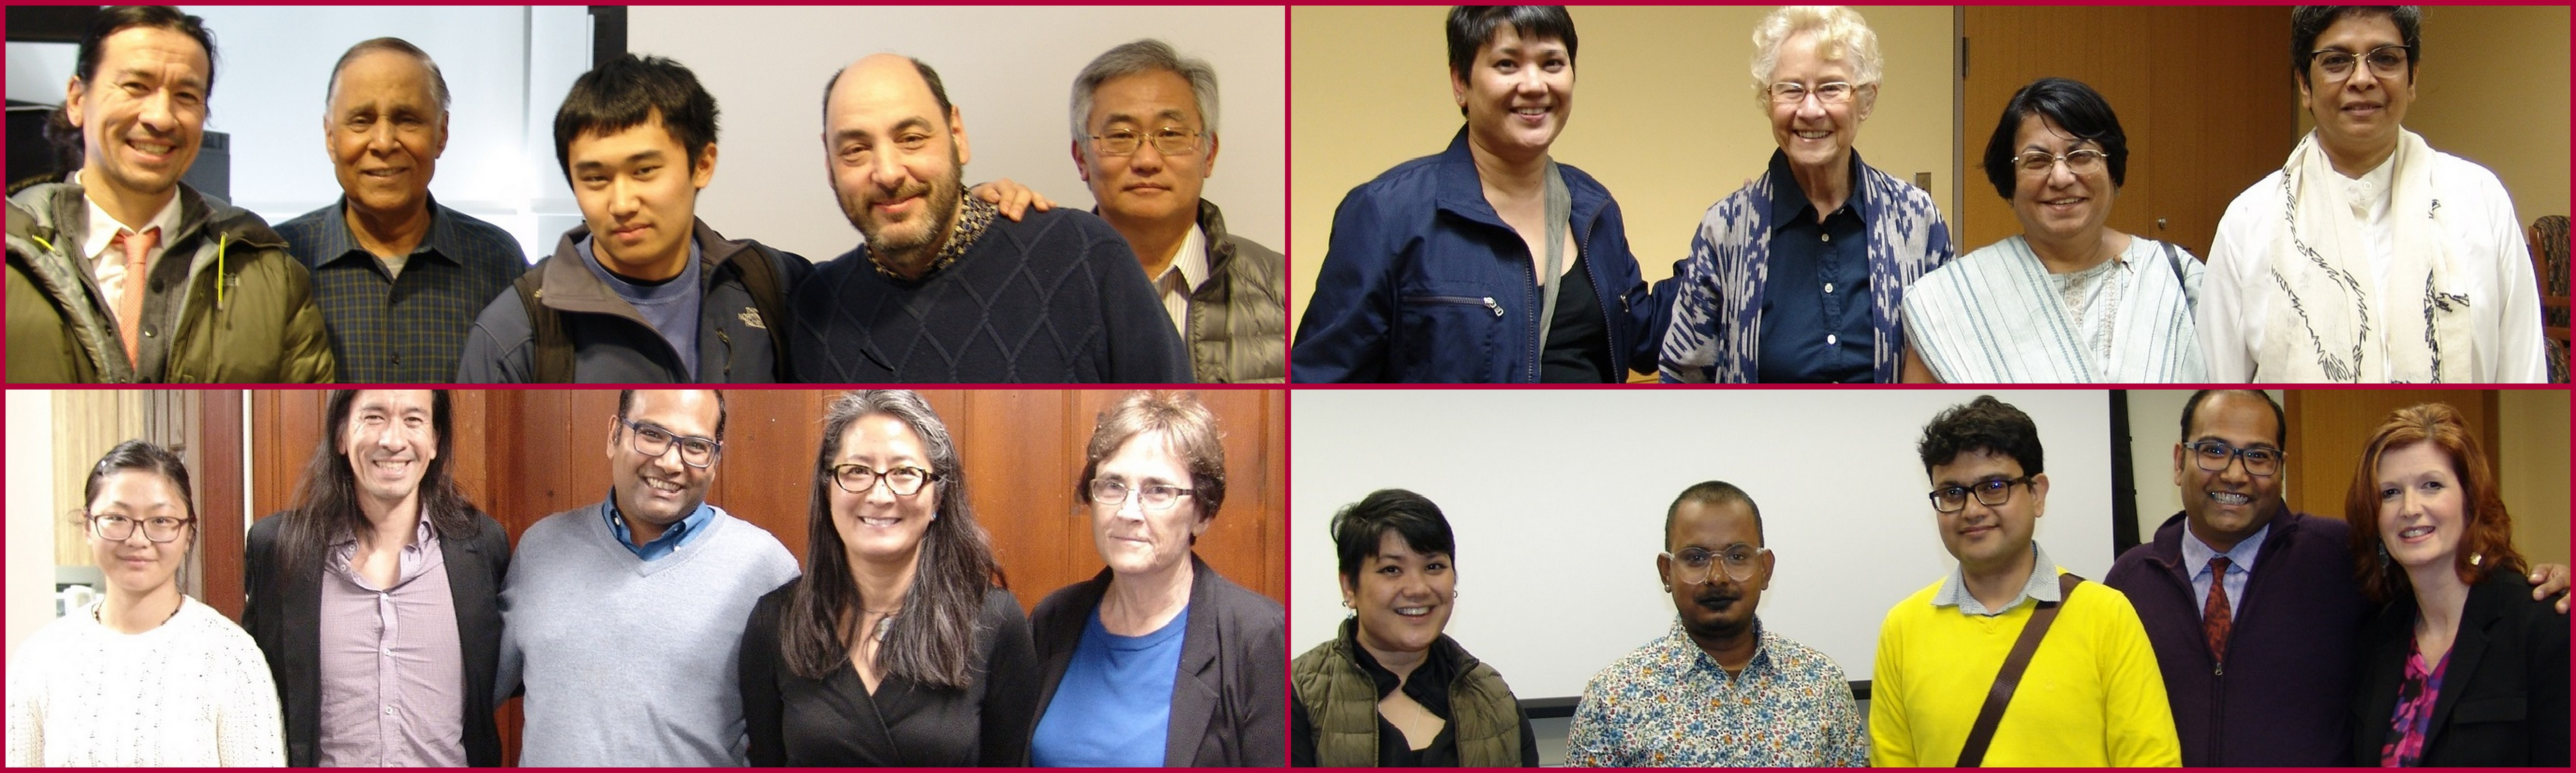 Photo gallery of the UConn Asian American Studies Institute Faculty